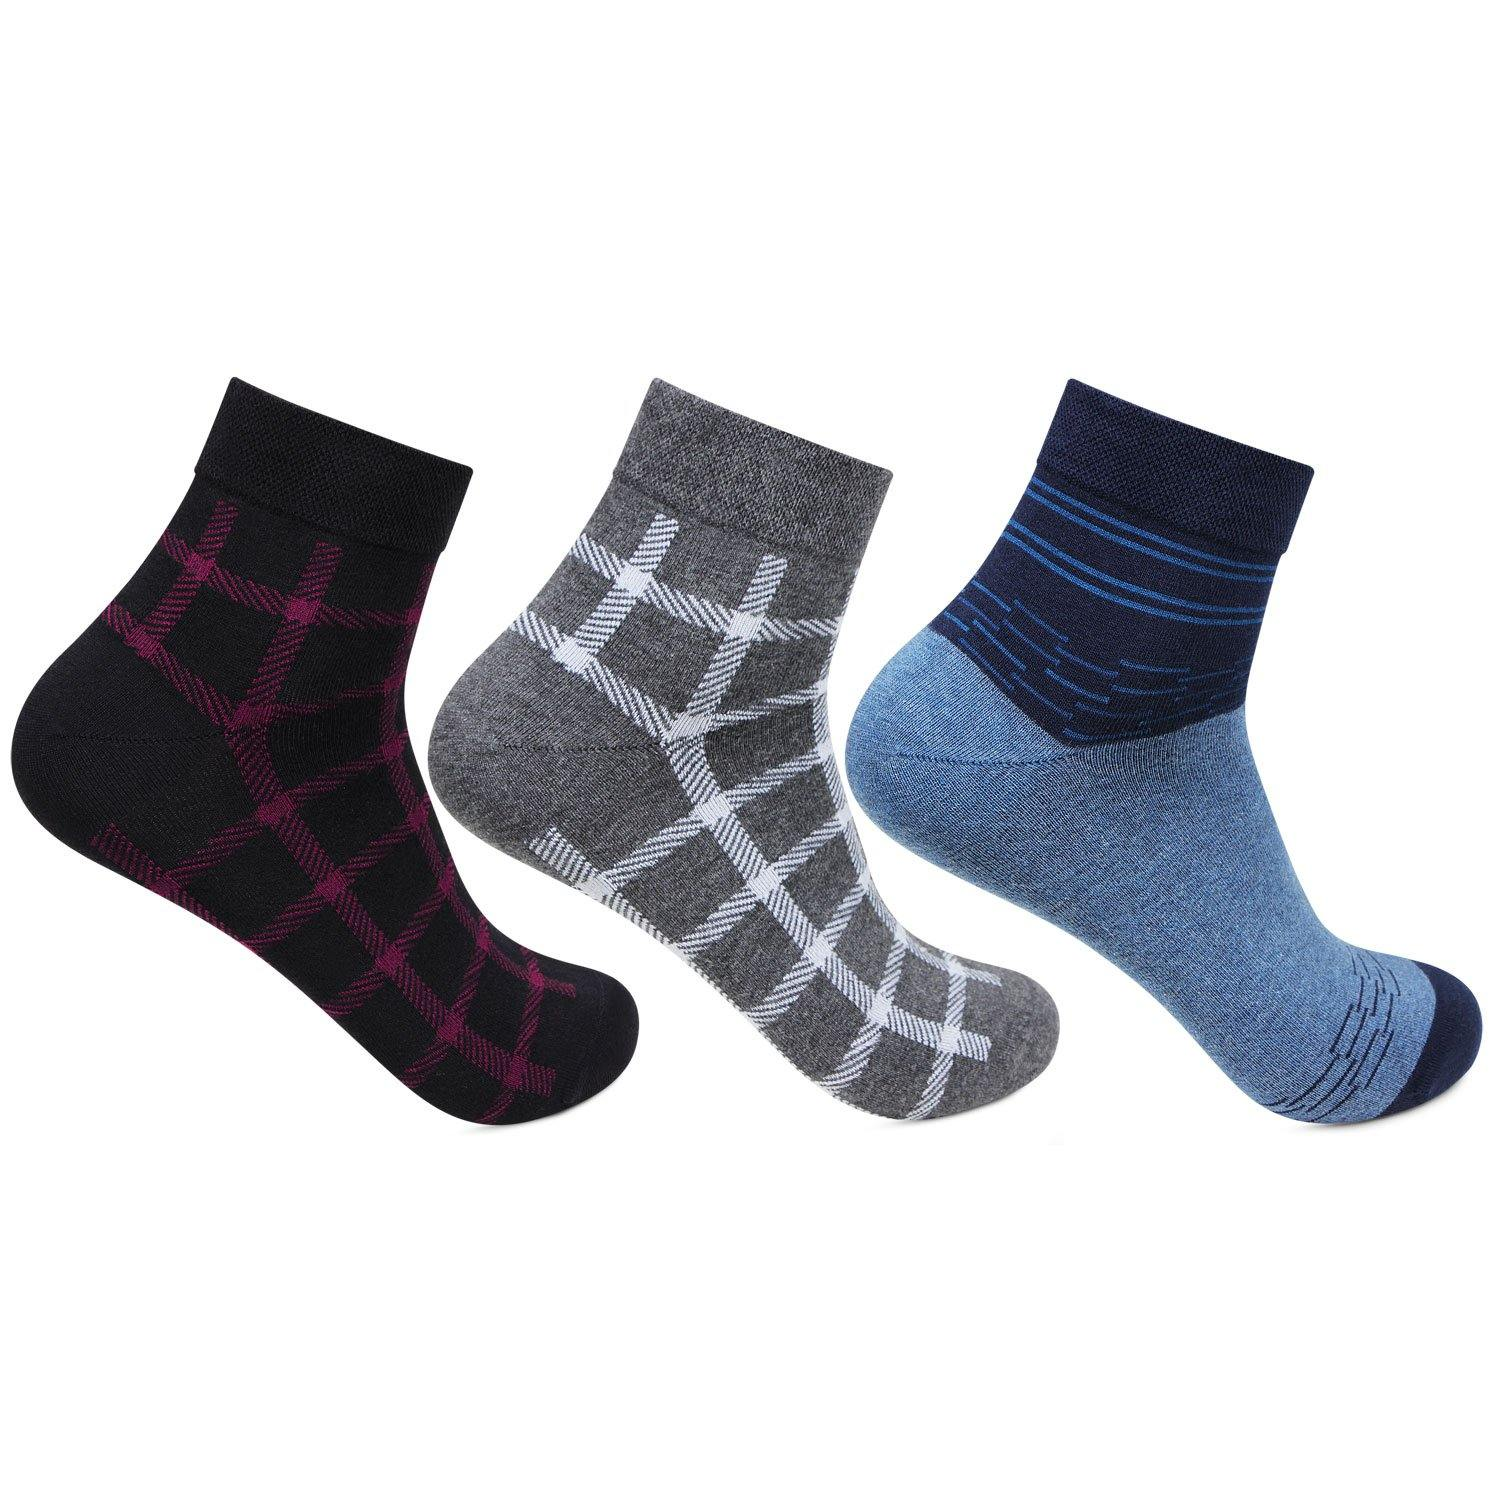 Men's Multicolored Scottish Collection Ankle Socks - Pack of 3